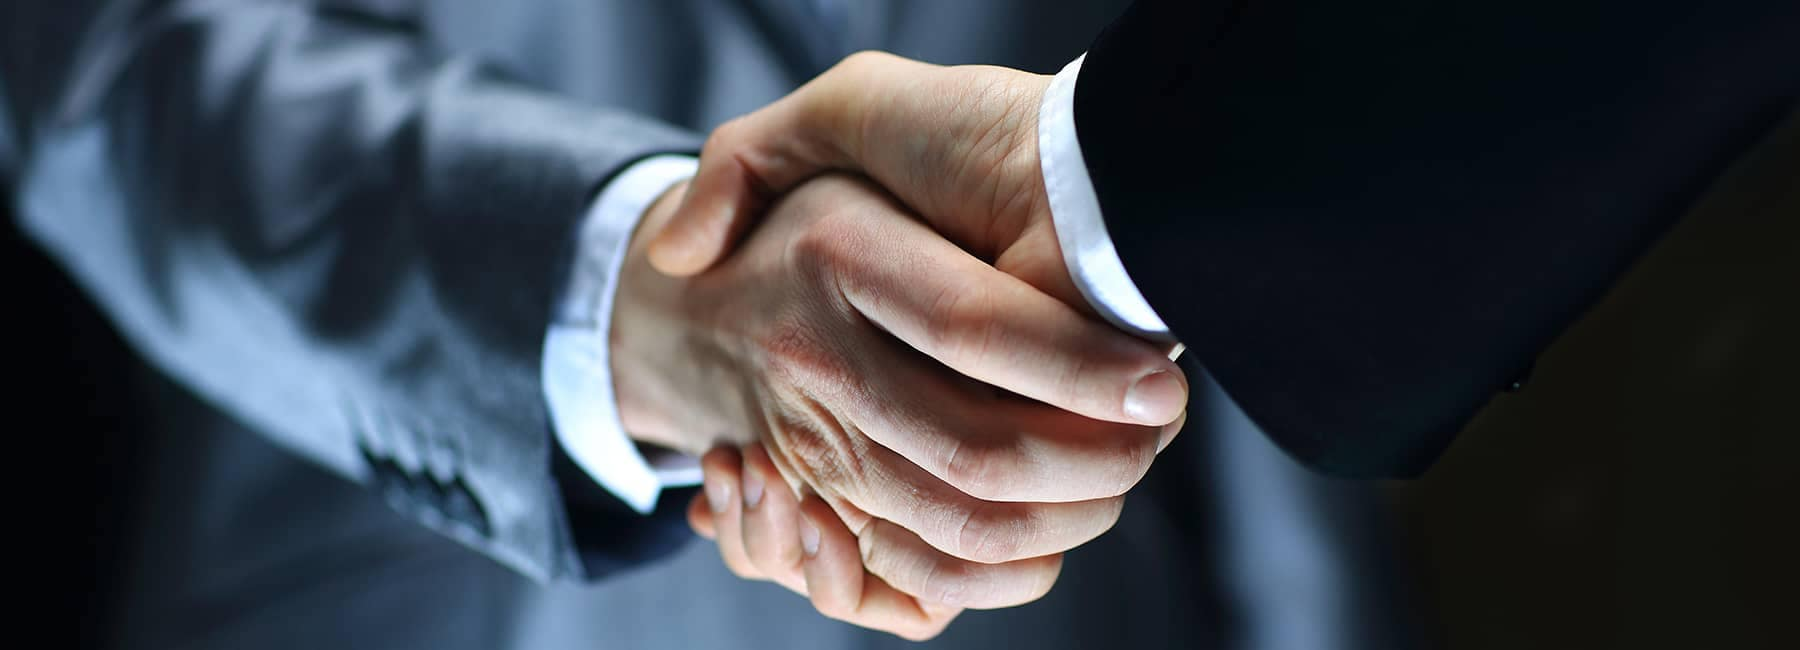 two men in suits shake hands